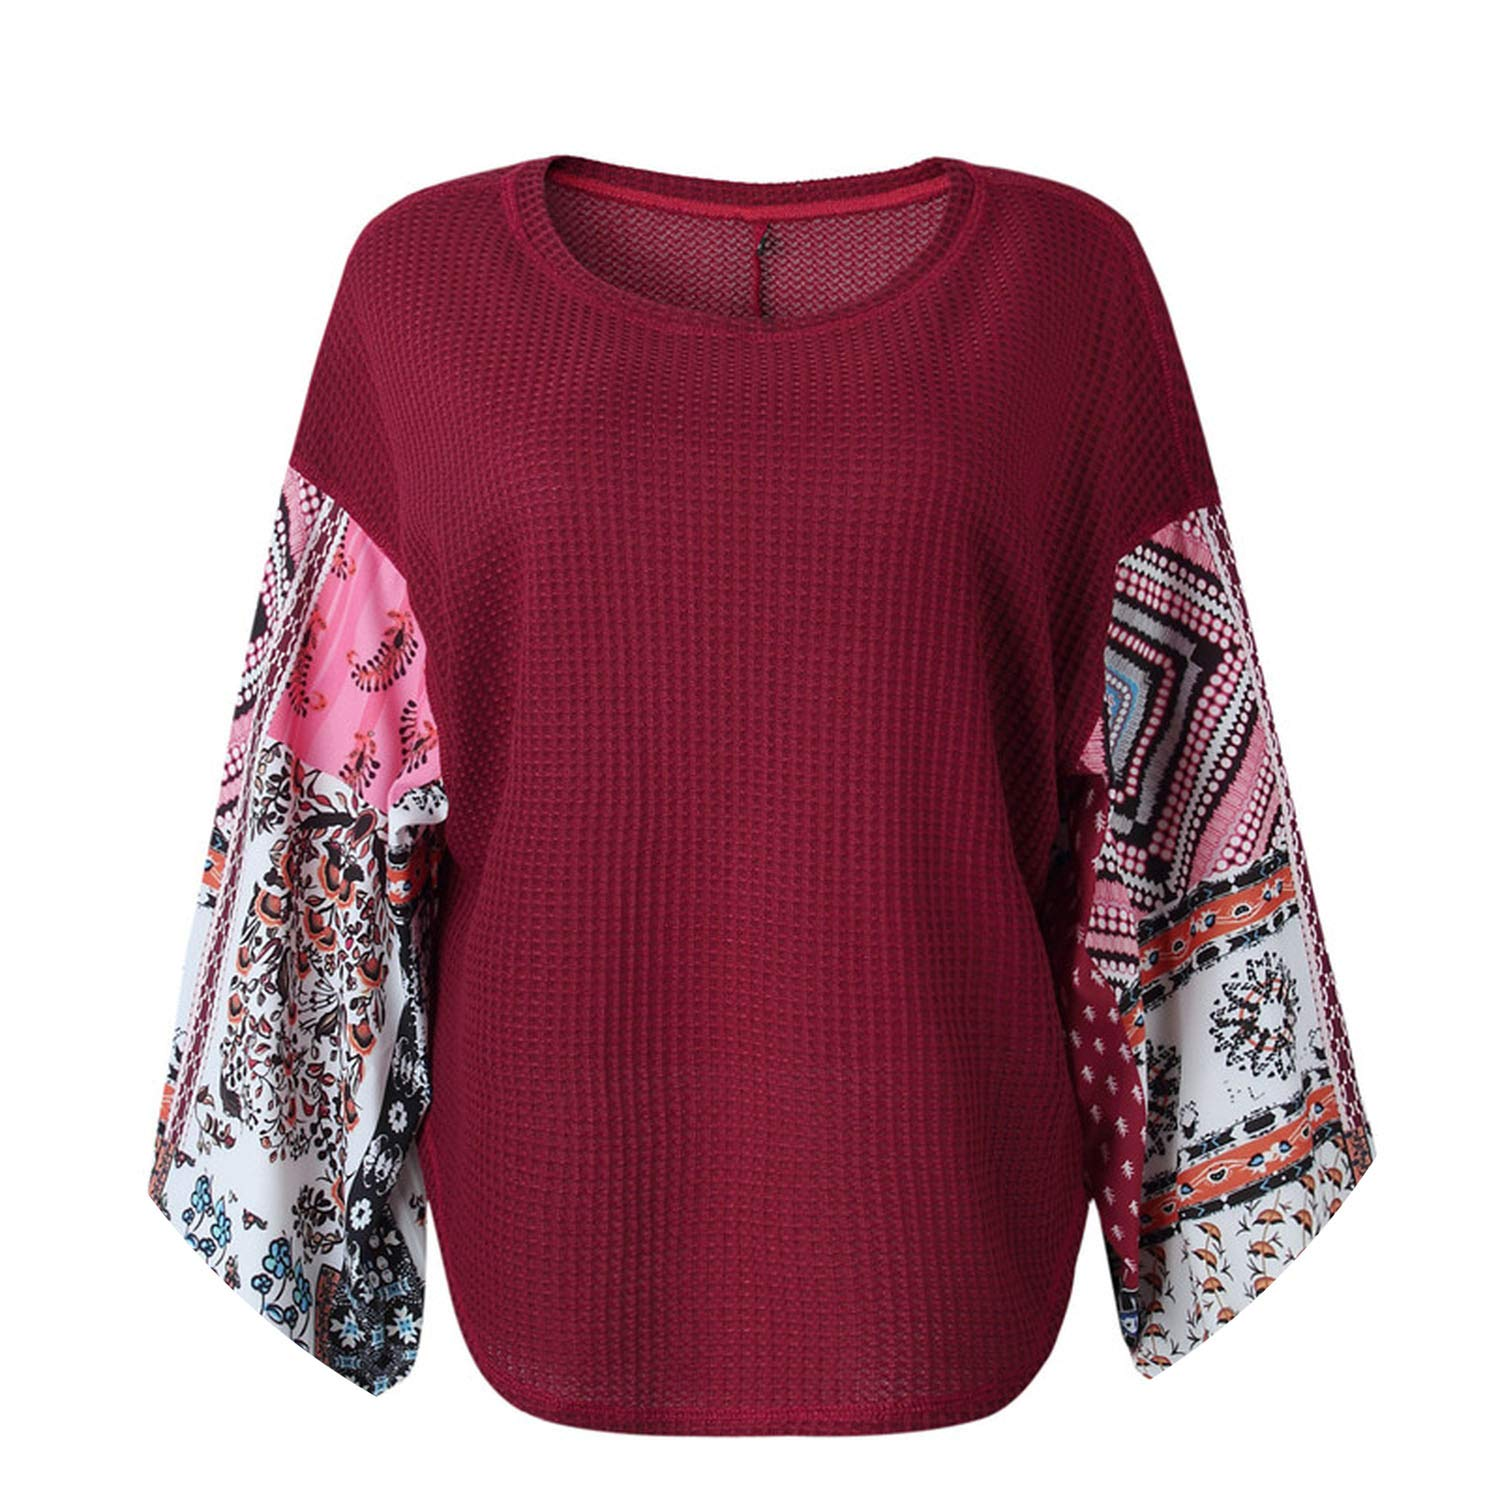 Women Pullovers Autumn Knitted Sweater Boho Printed Long ...